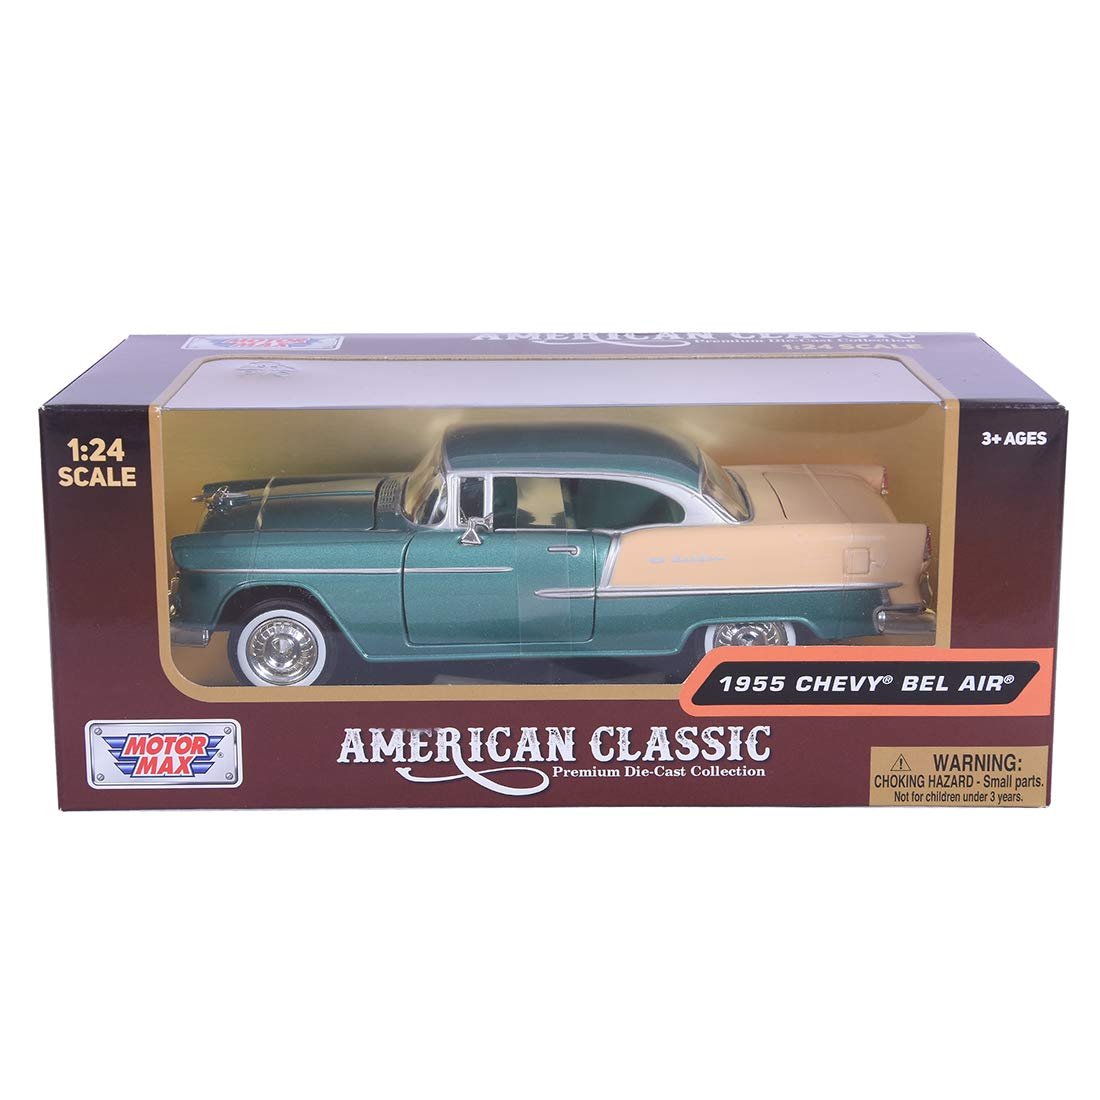 Motormax 124 1955 Chevy Bel Air Toys Games 1966 Chevrolet Value